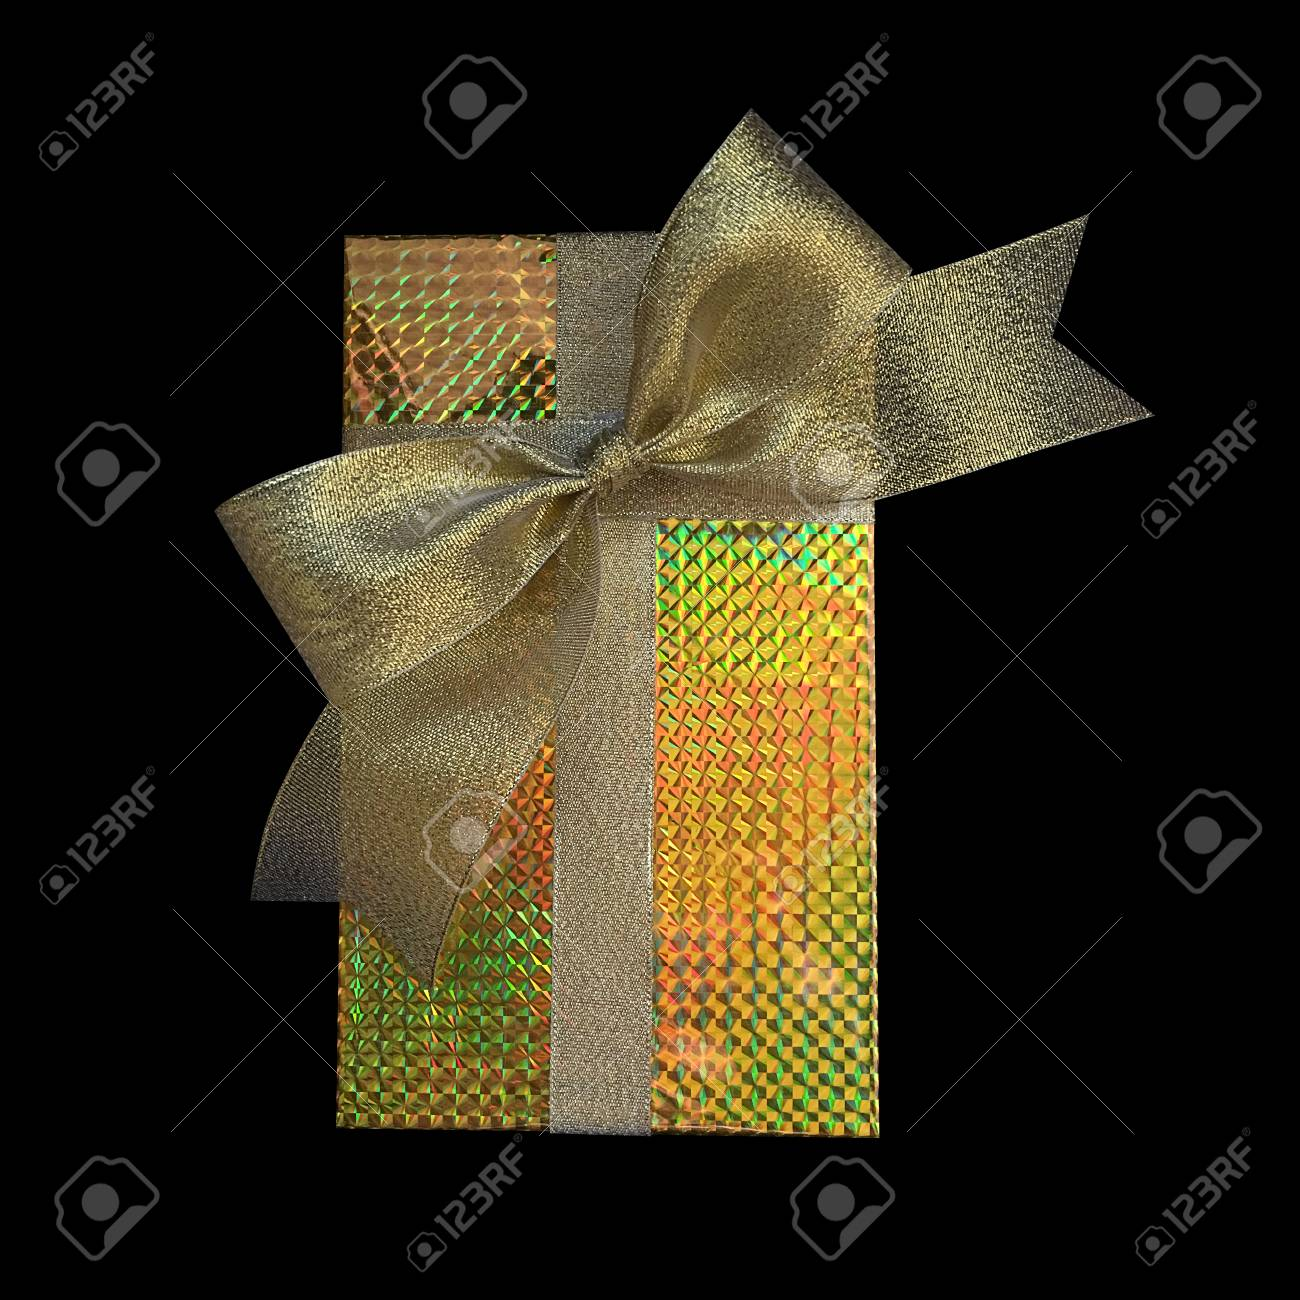 Gift box wrap and ribbon with gold foil hologram wrapping paper